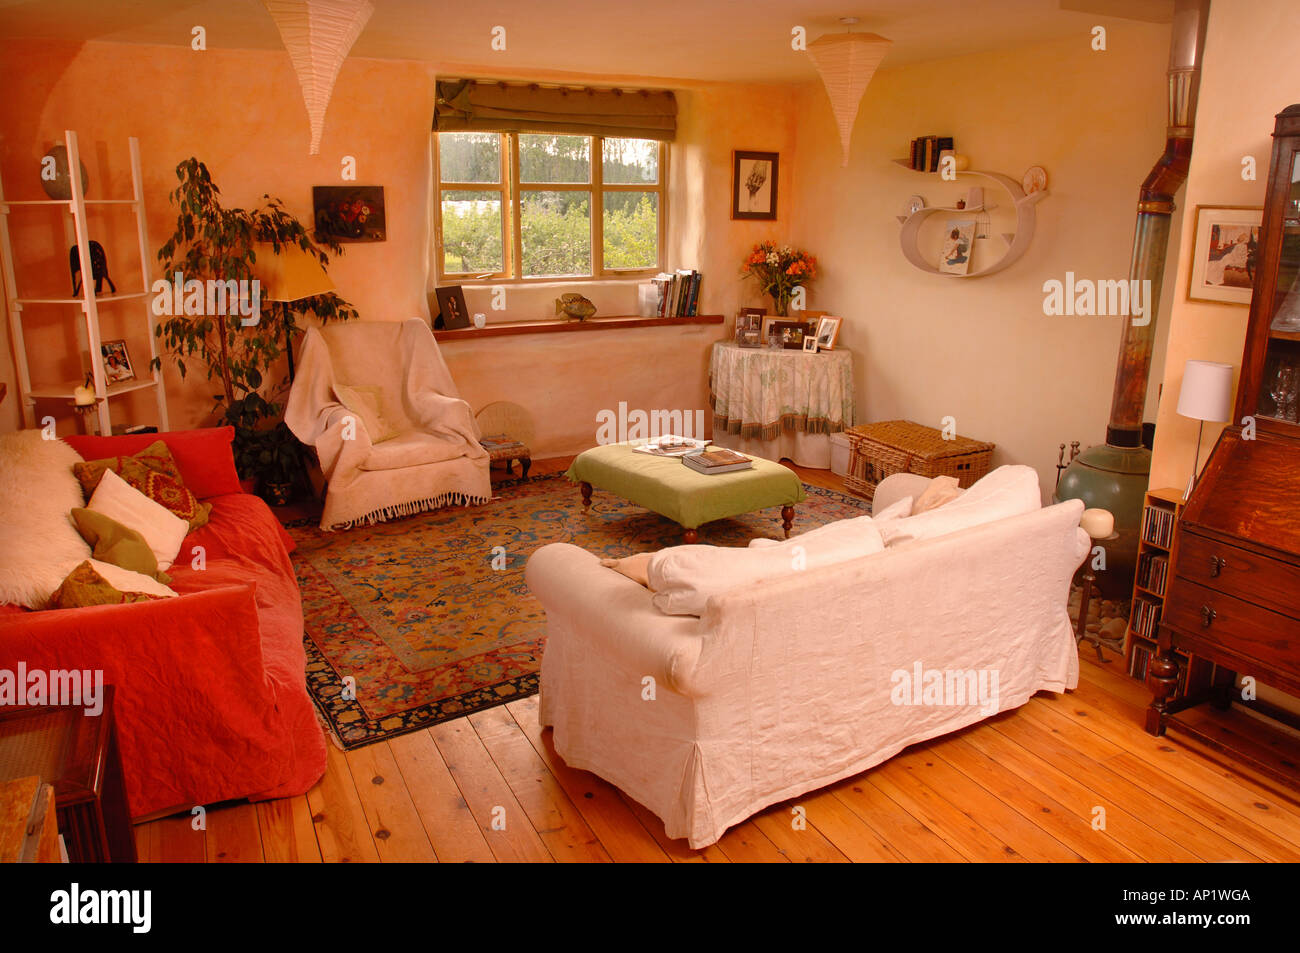 THE LIVING ROOM IN A HOUSE BUILT WITH STRAW BALE WALLS WITH A RENDERED COVERING GLOUCESTERSHIRE UK - Stock Image